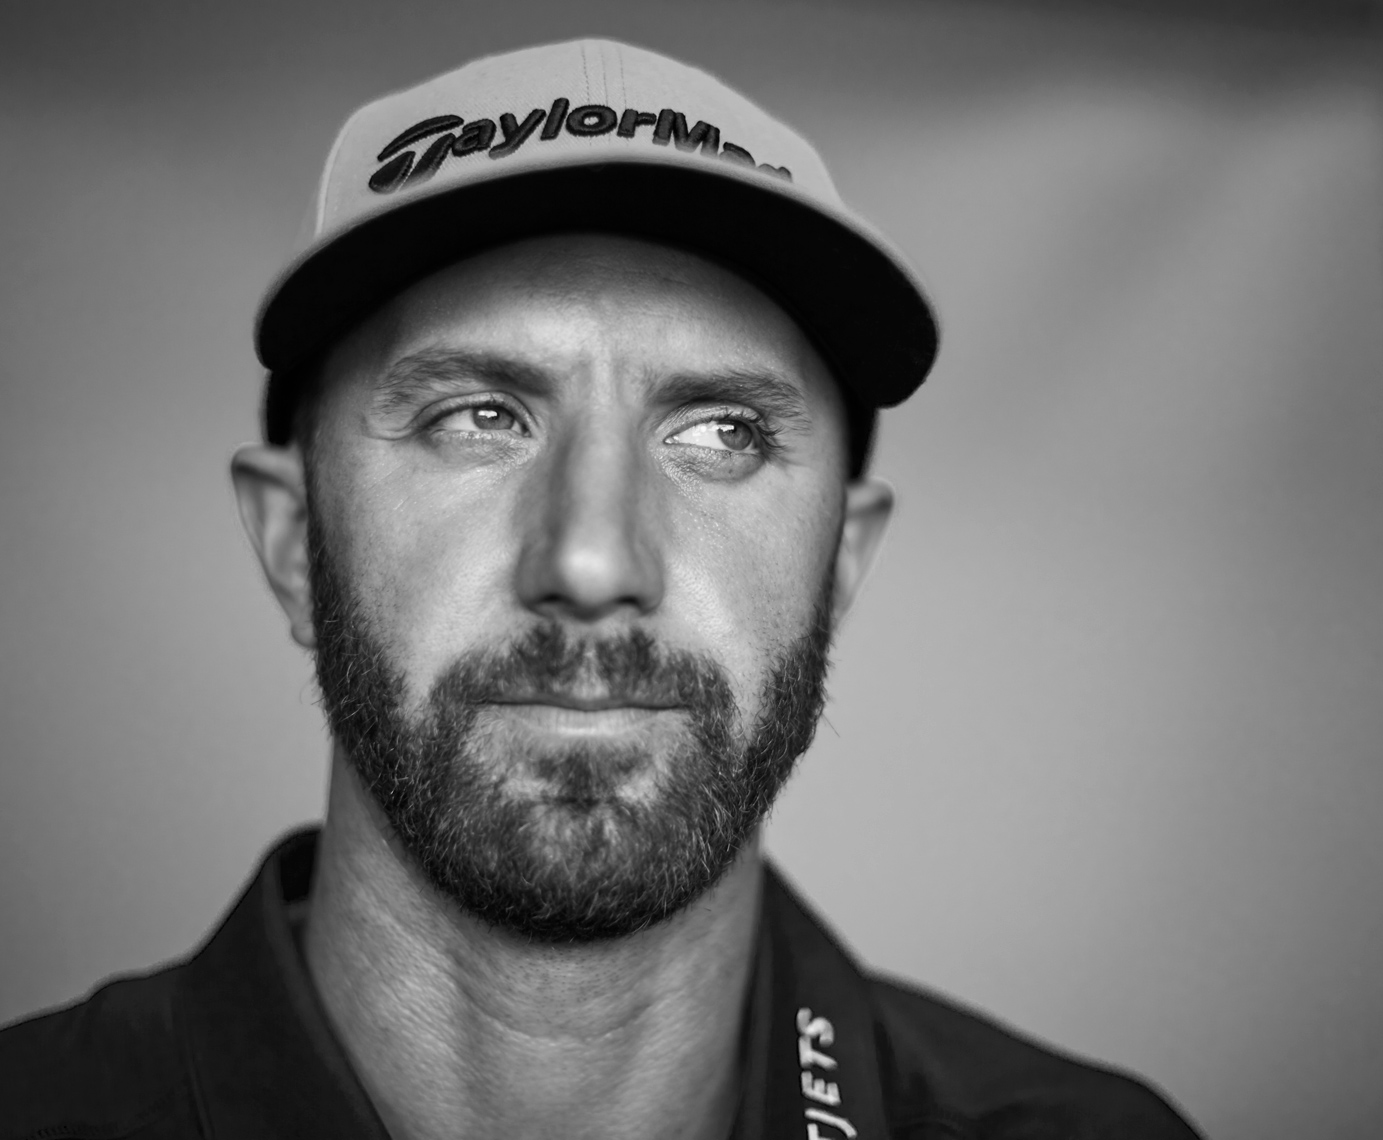 DustinJohnson04